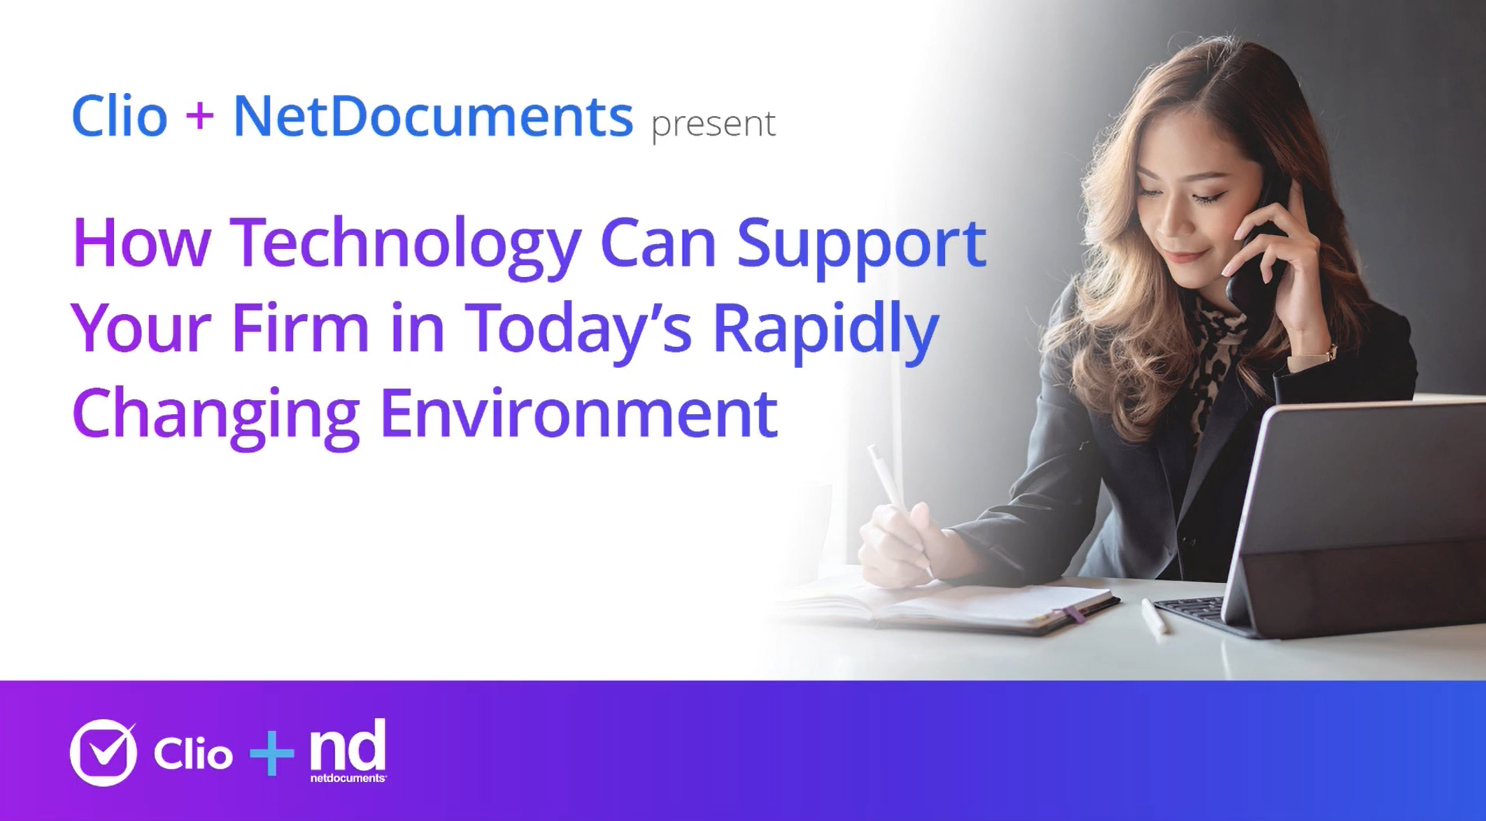 Clio and NetDocuments discuss in this webinar the rapidly changing technology environments in law firms; a woman smiles while on the phone sitting at a desk writing.